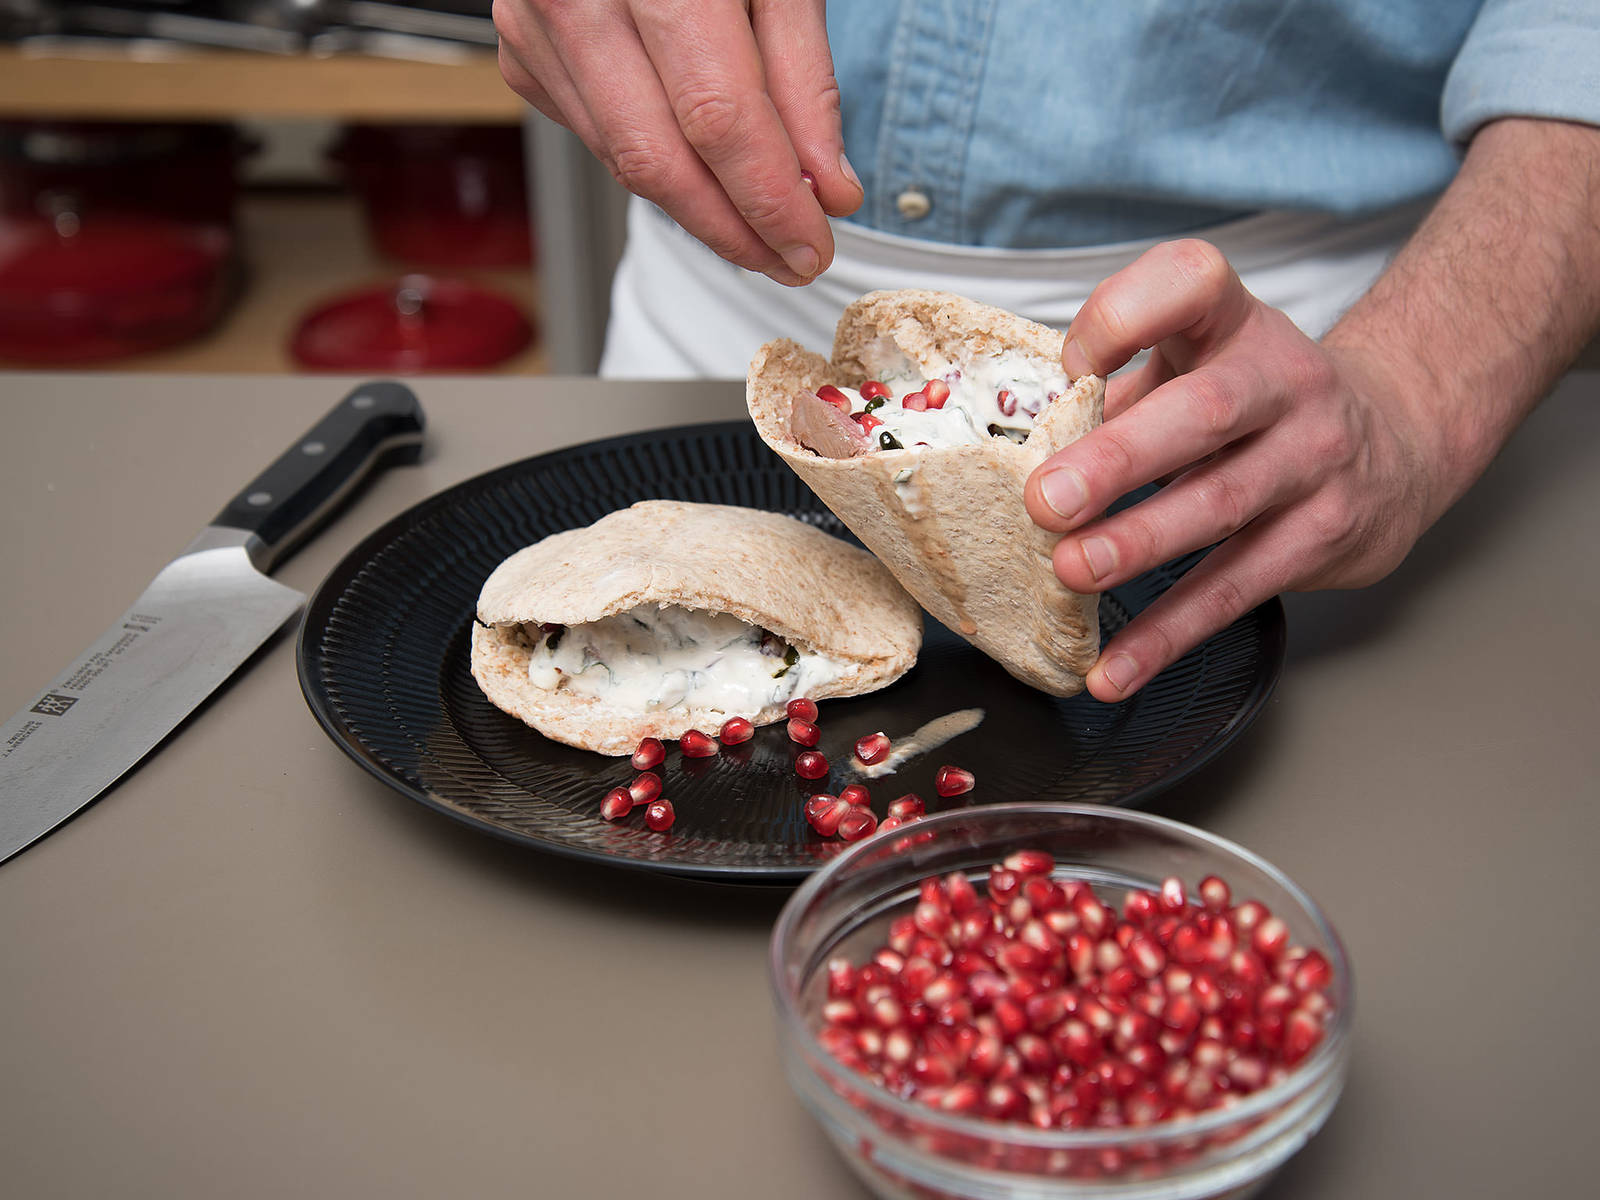 Remove pita bread from oven and fill with yogurt sauce, pomegranate seeds, toasted pistachios, and thinly sliced lamb. Serve immediately. Enjoy!